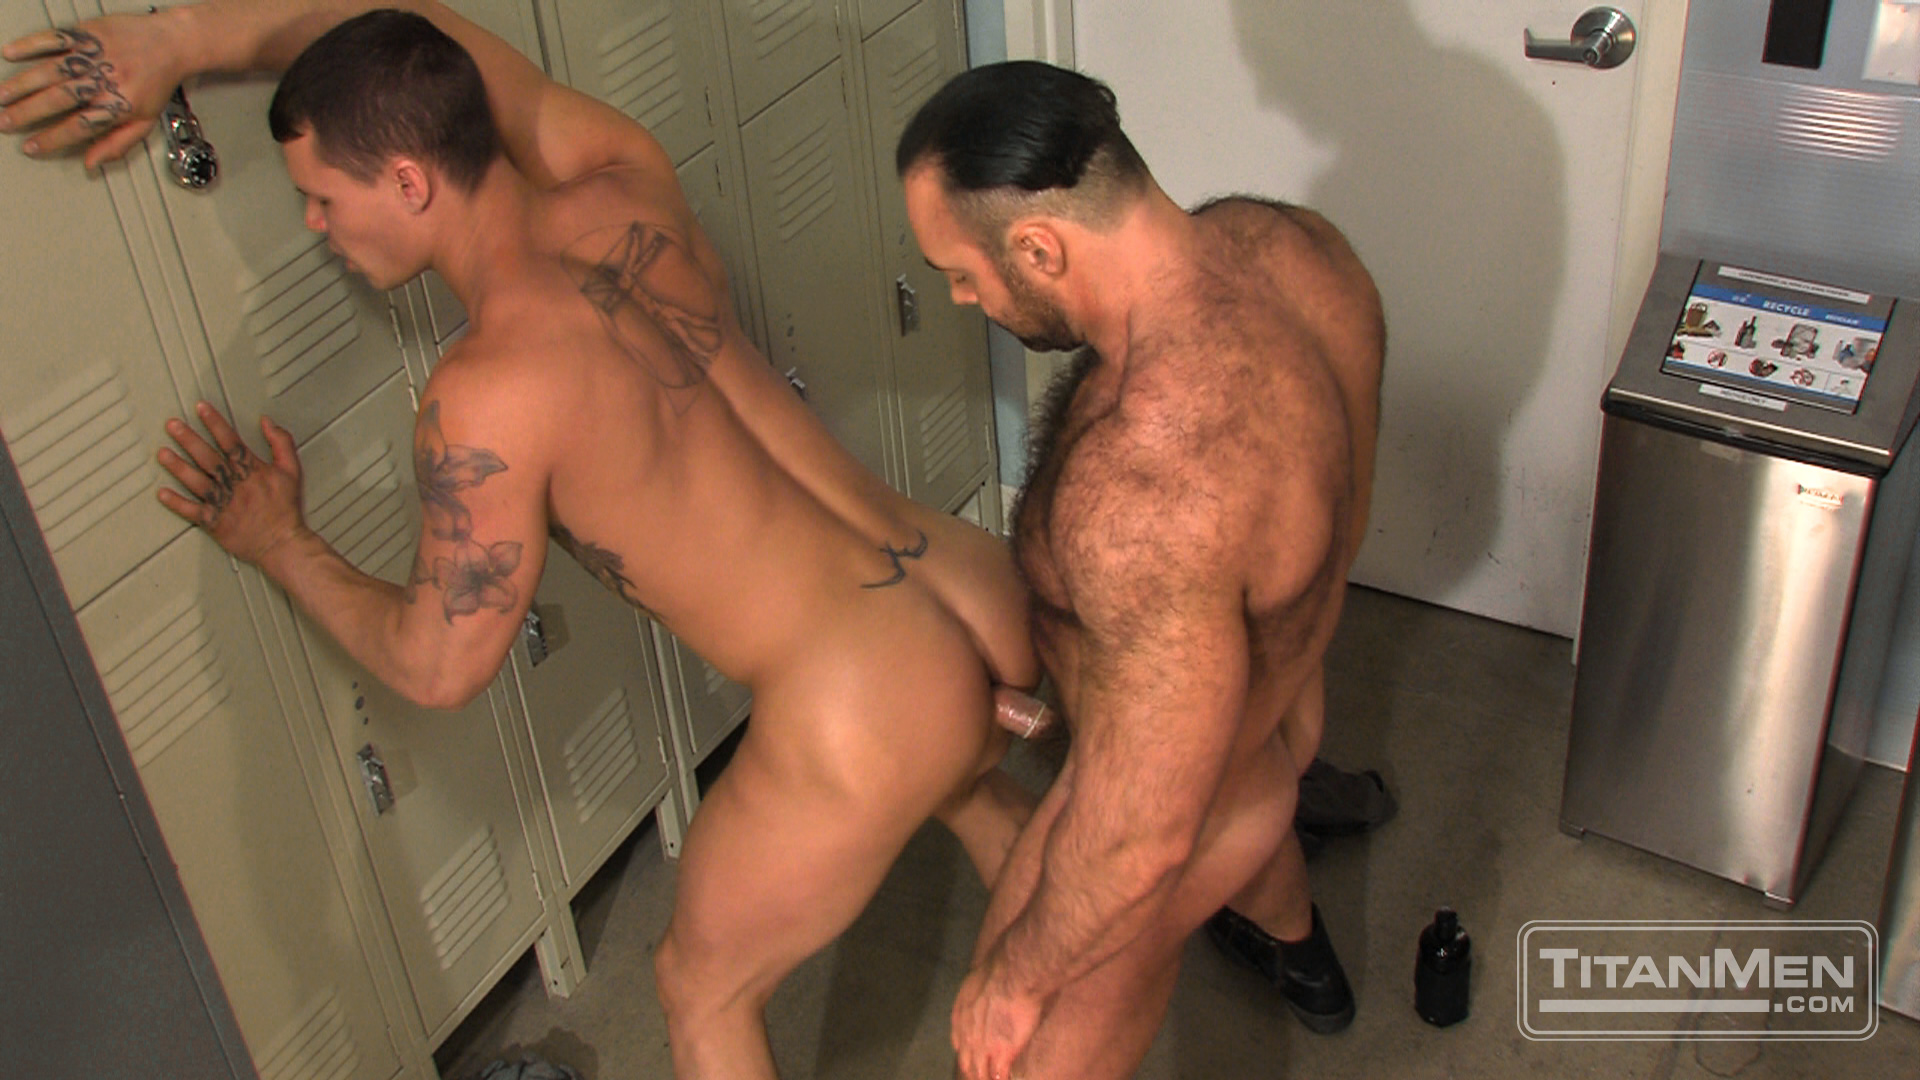 otla_scene02_022 Hung Hairy Muscle Corrections Officer Fucks A Smooth Hung Muscle Inmate